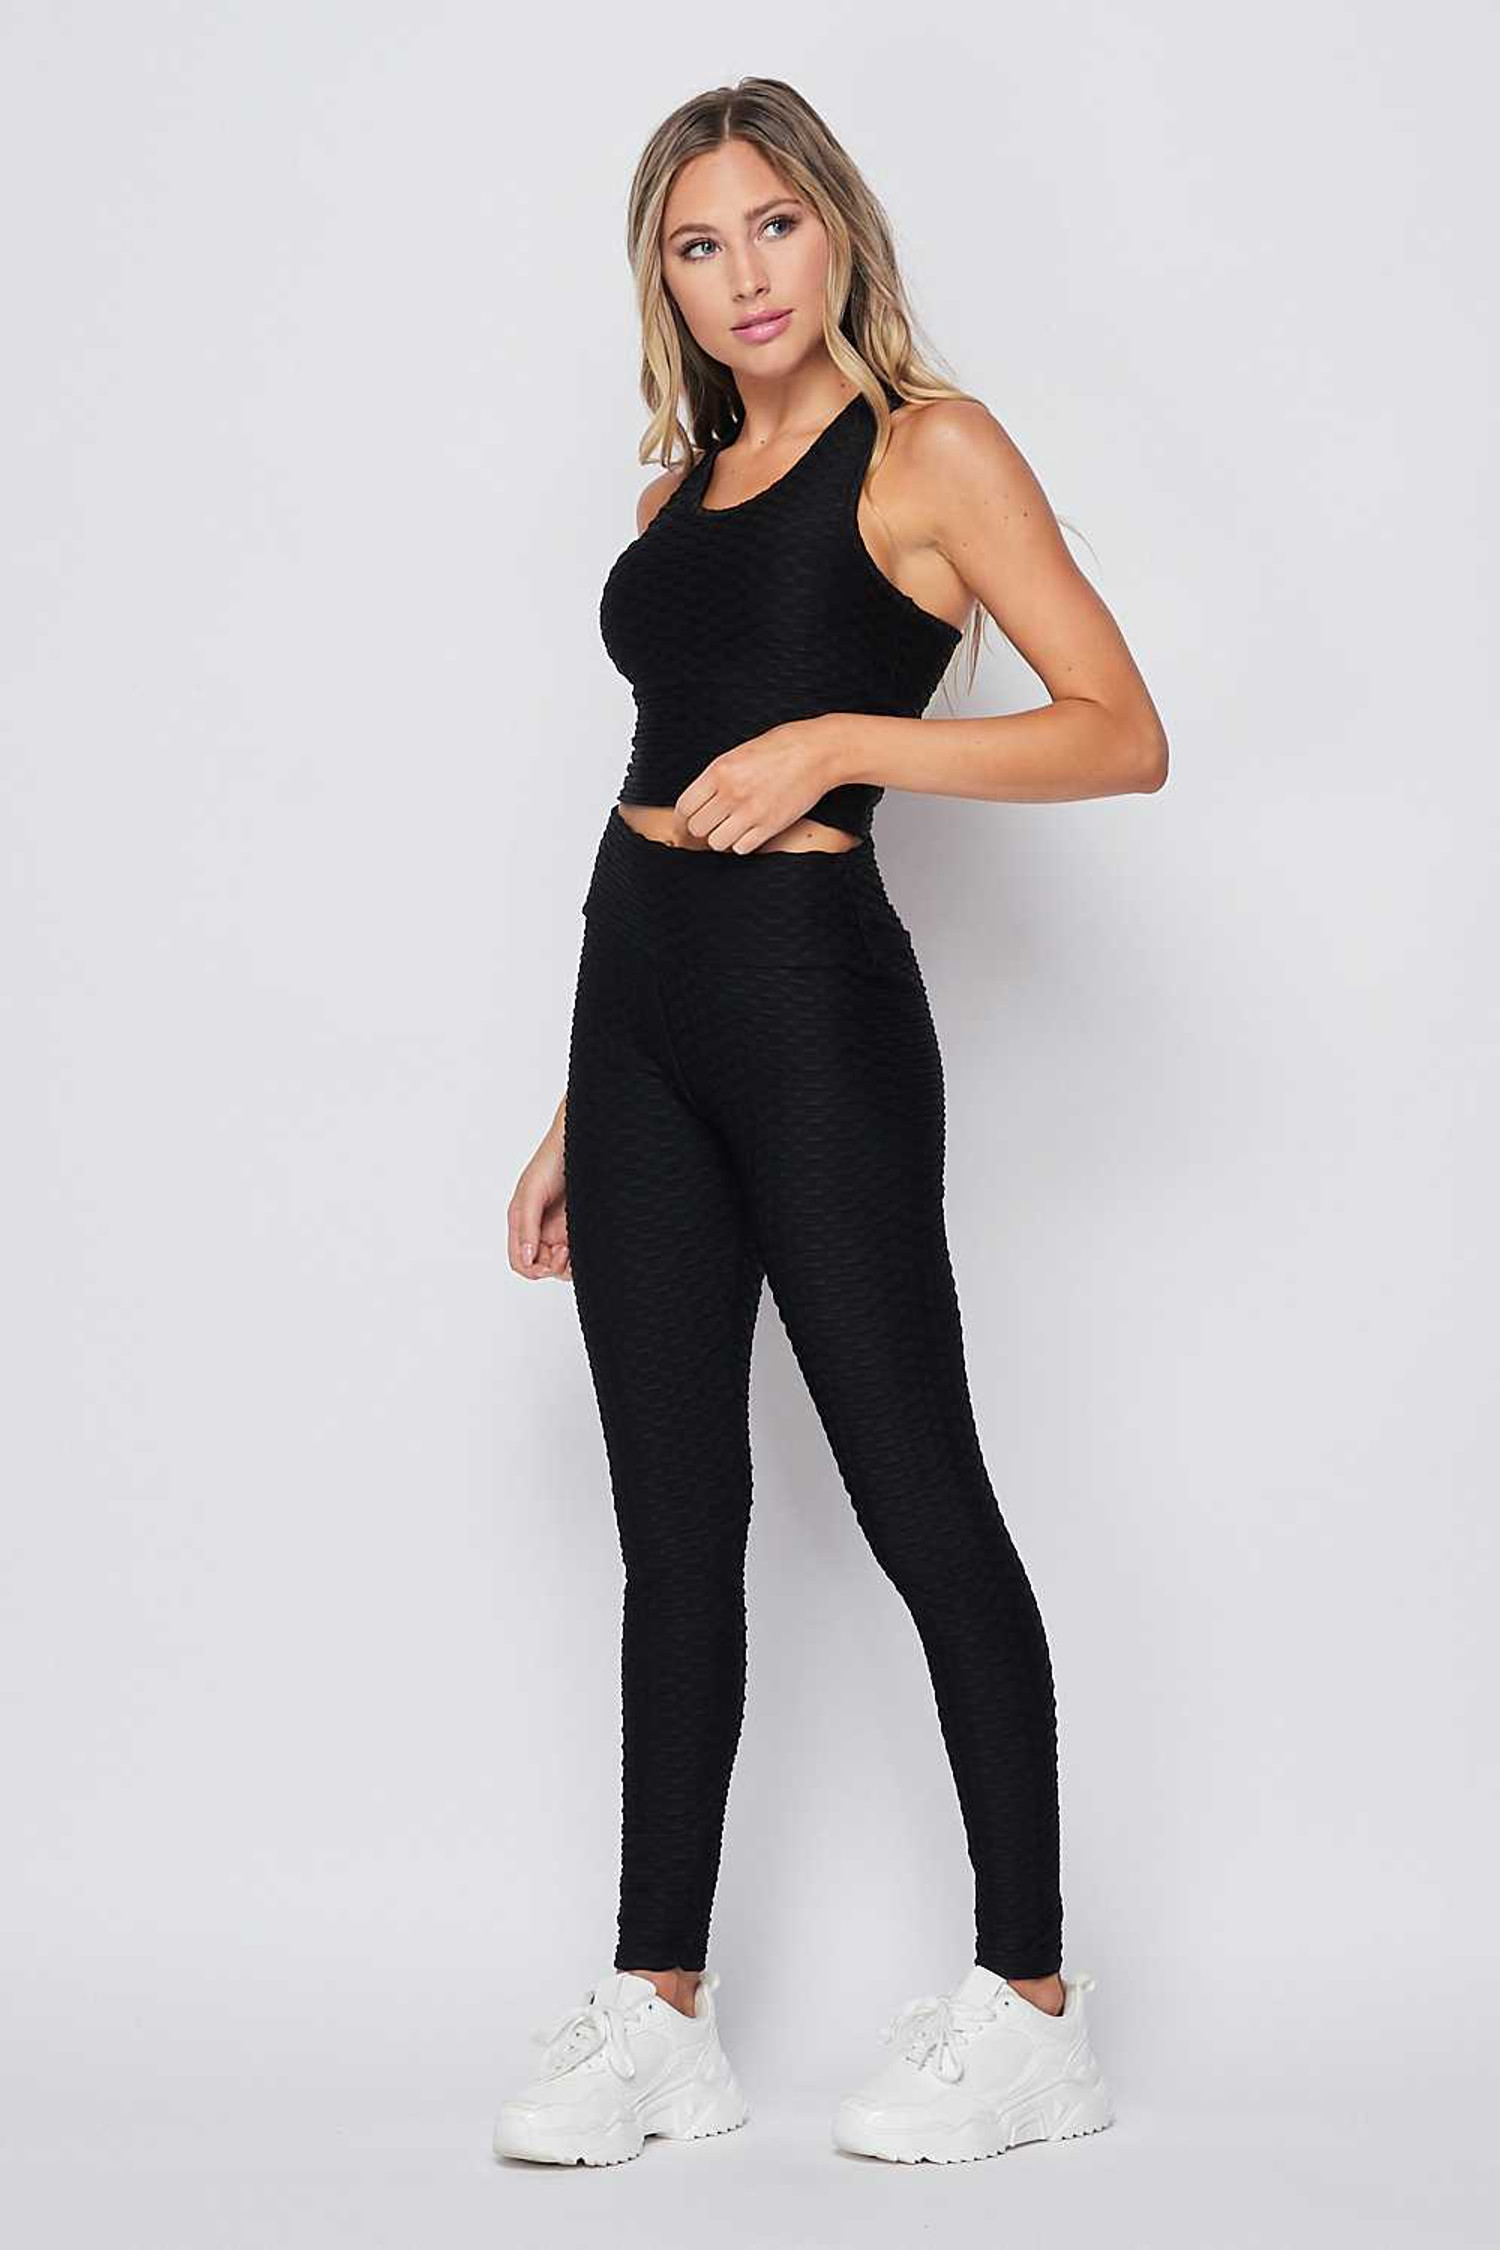 Right side of Black 2 Piece Scrunch Butt Leggings and Crop Top Set